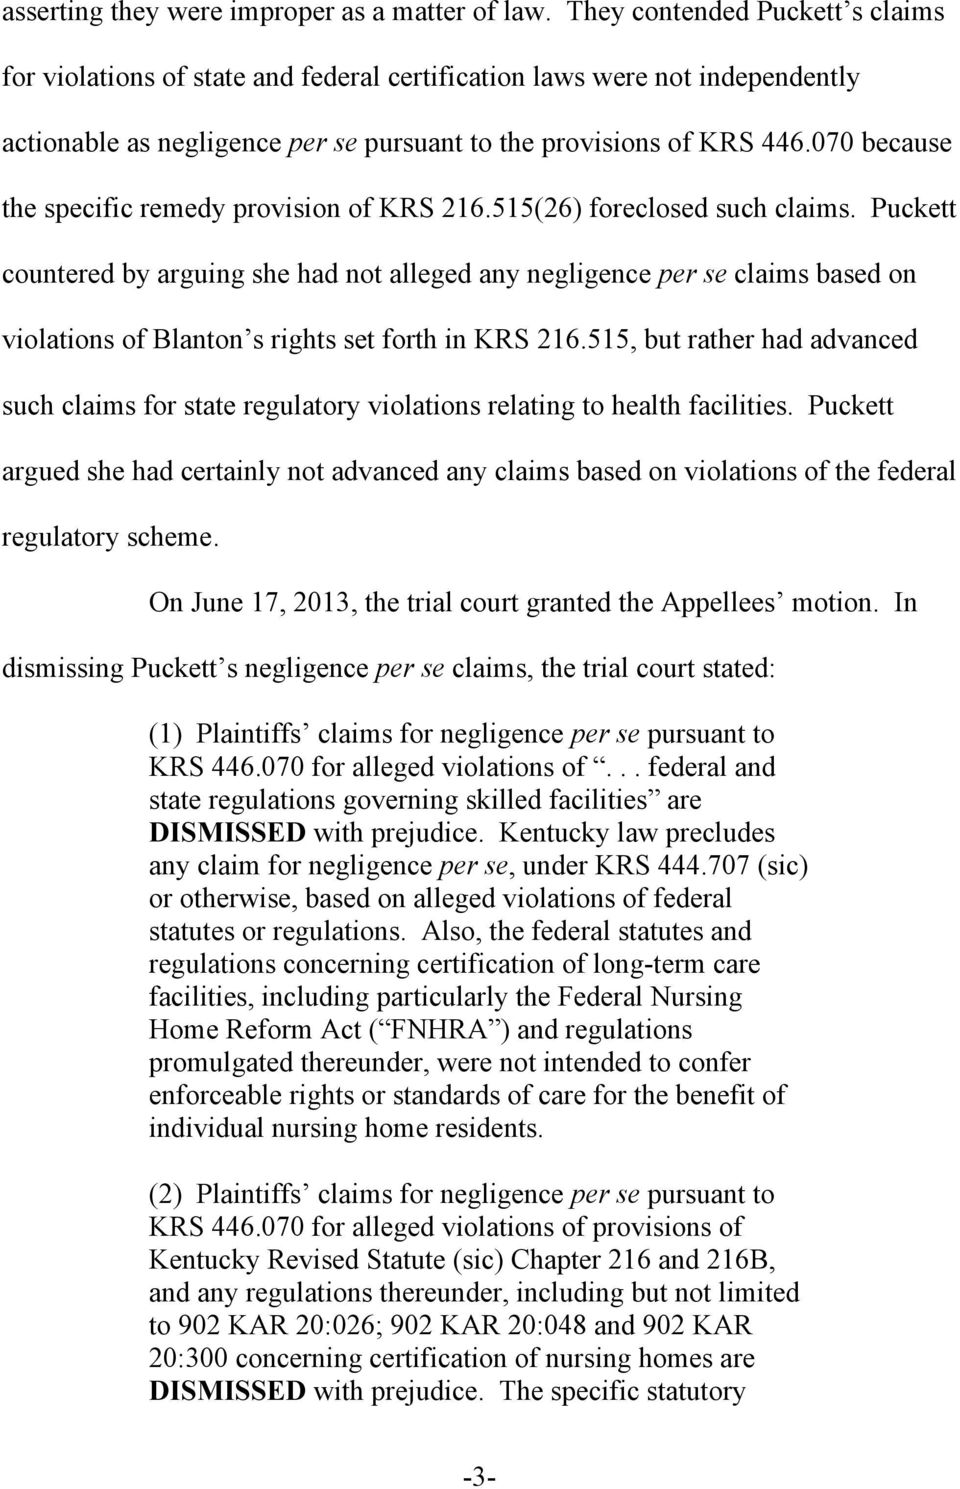 070 because the specific remedy provision of KRS 216.515(26) foreclosed such claims.